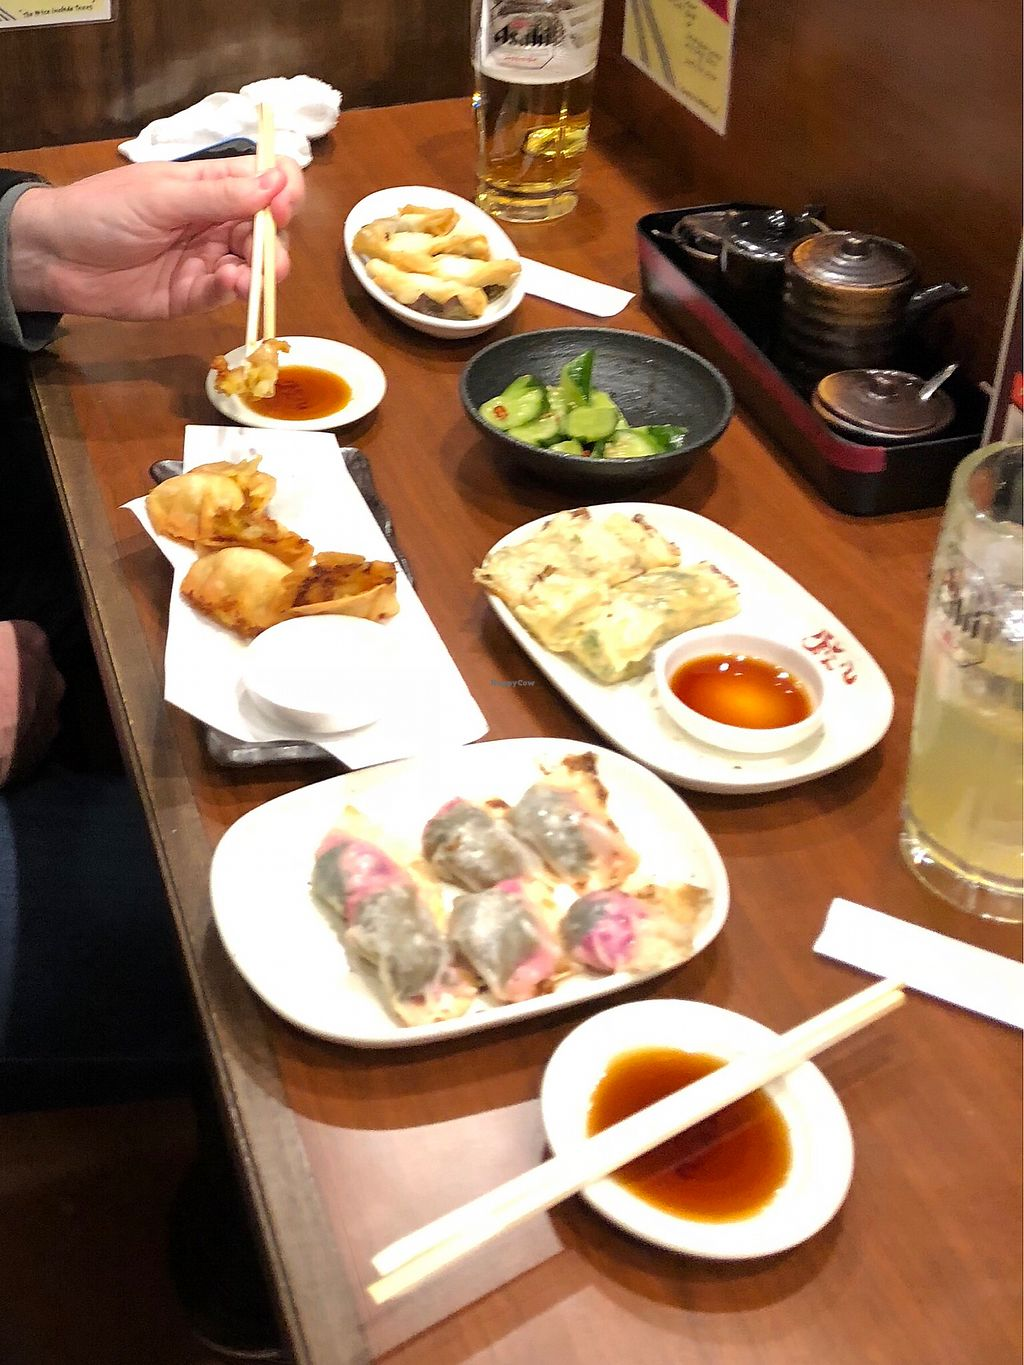 "Photo of Chao Chao Gyoza Shijo-Kawaramachi  by <a href=""/members/profile/zoeandflopsy"">zoeandflopsy</a> <br/>Gyoza  <br/> January 8, 2018  - <a href='/contact/abuse/image/108953/344194'>Report</a>"